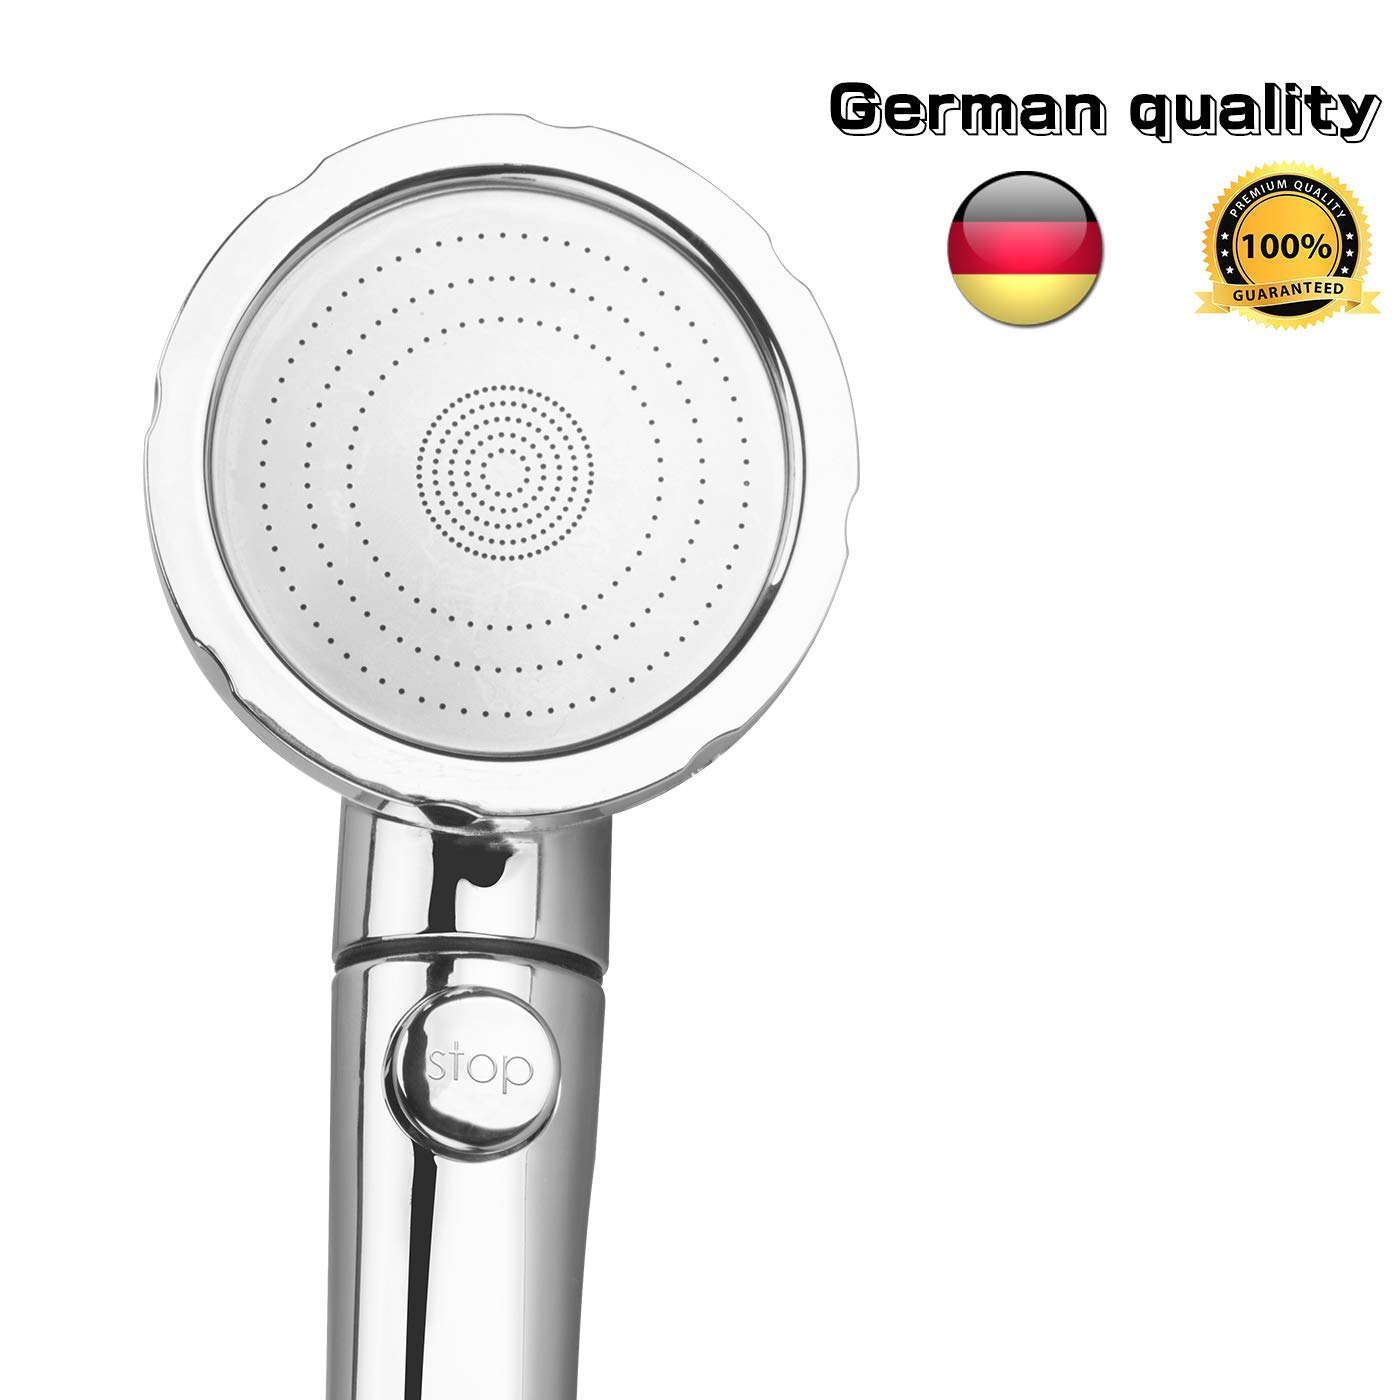 Detachable Shower Head, Handheld Shower Head with Pause Switch High Pressure shower head German Craft 3-settings Water Saving Luxury Shower Head Replacement (Chrome-2)